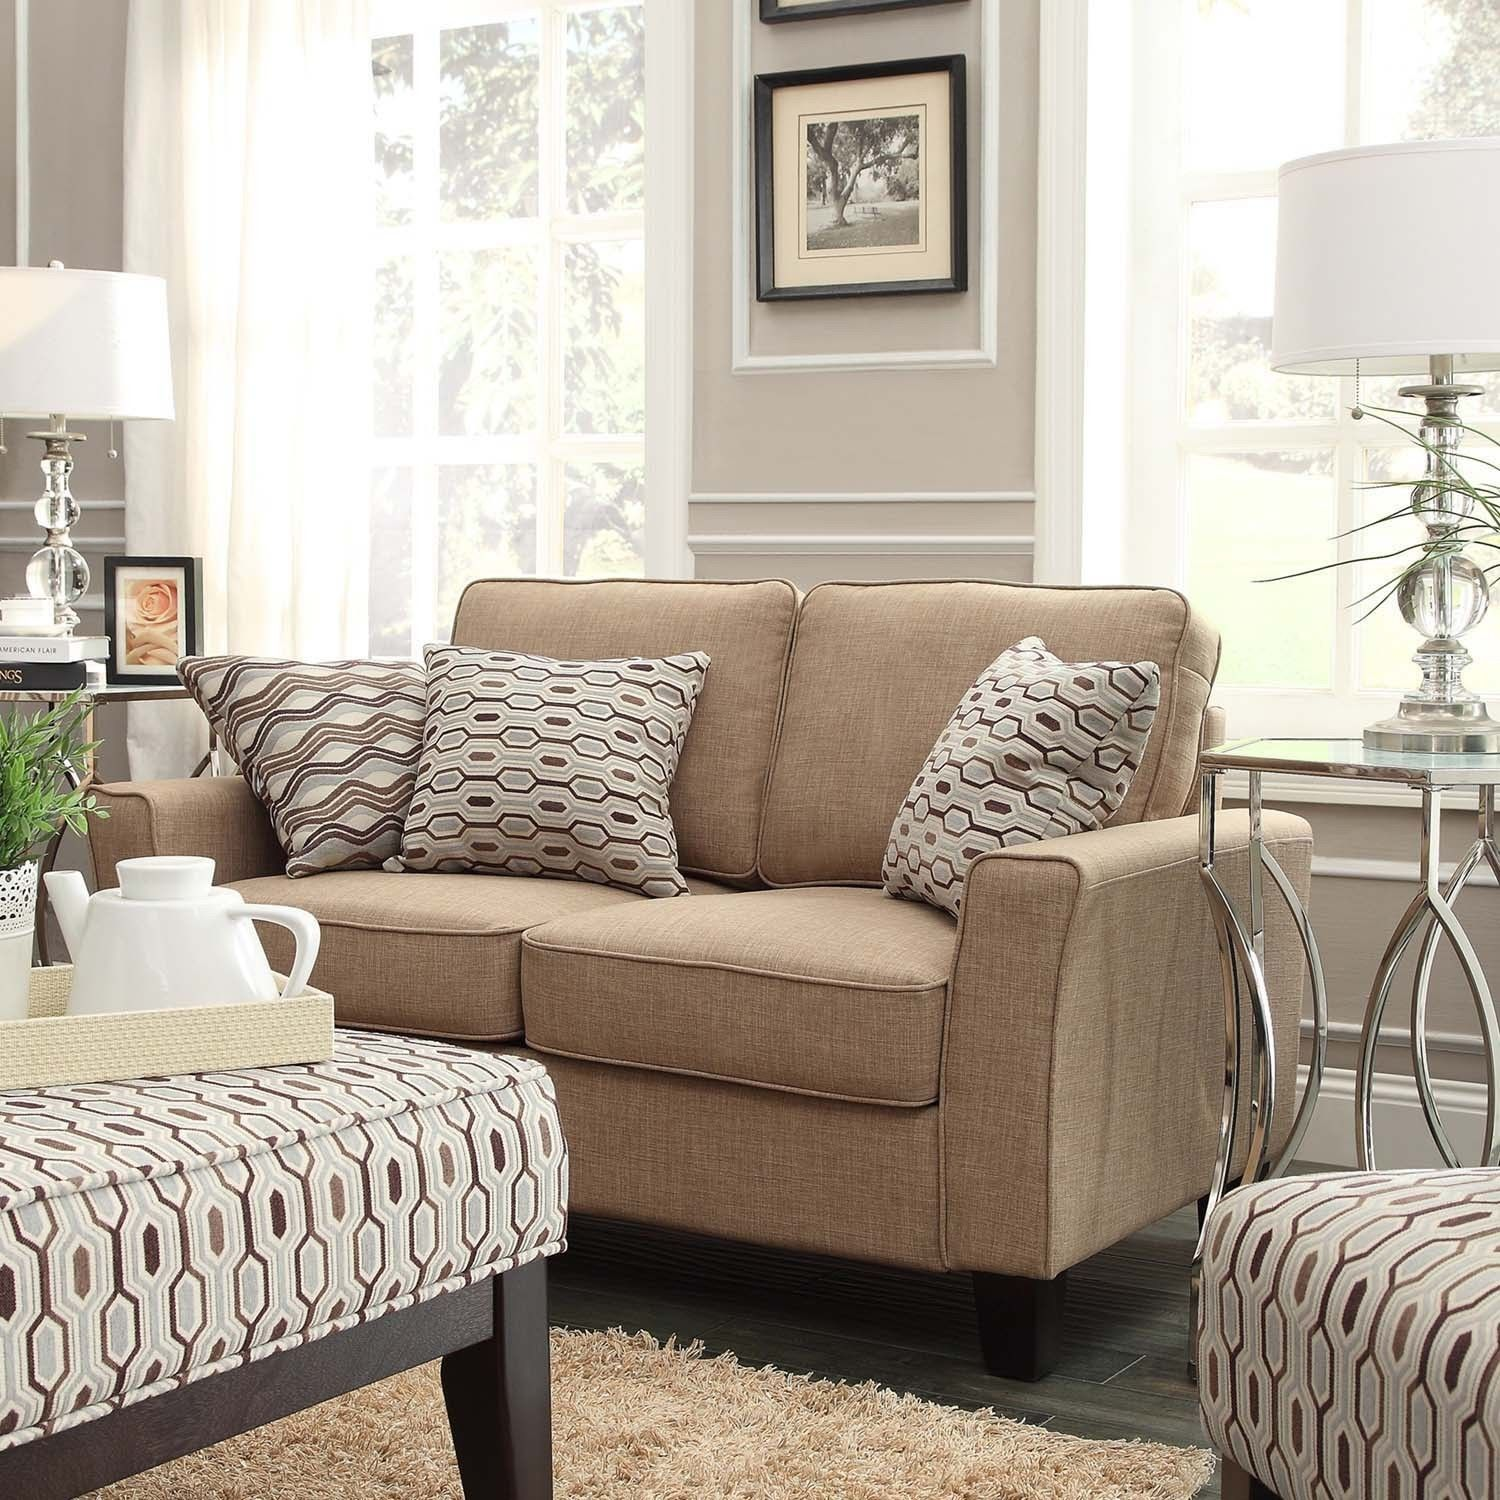 Extra deep seat cushions with wide arms provide relaxed and comfortable  seating to this track-